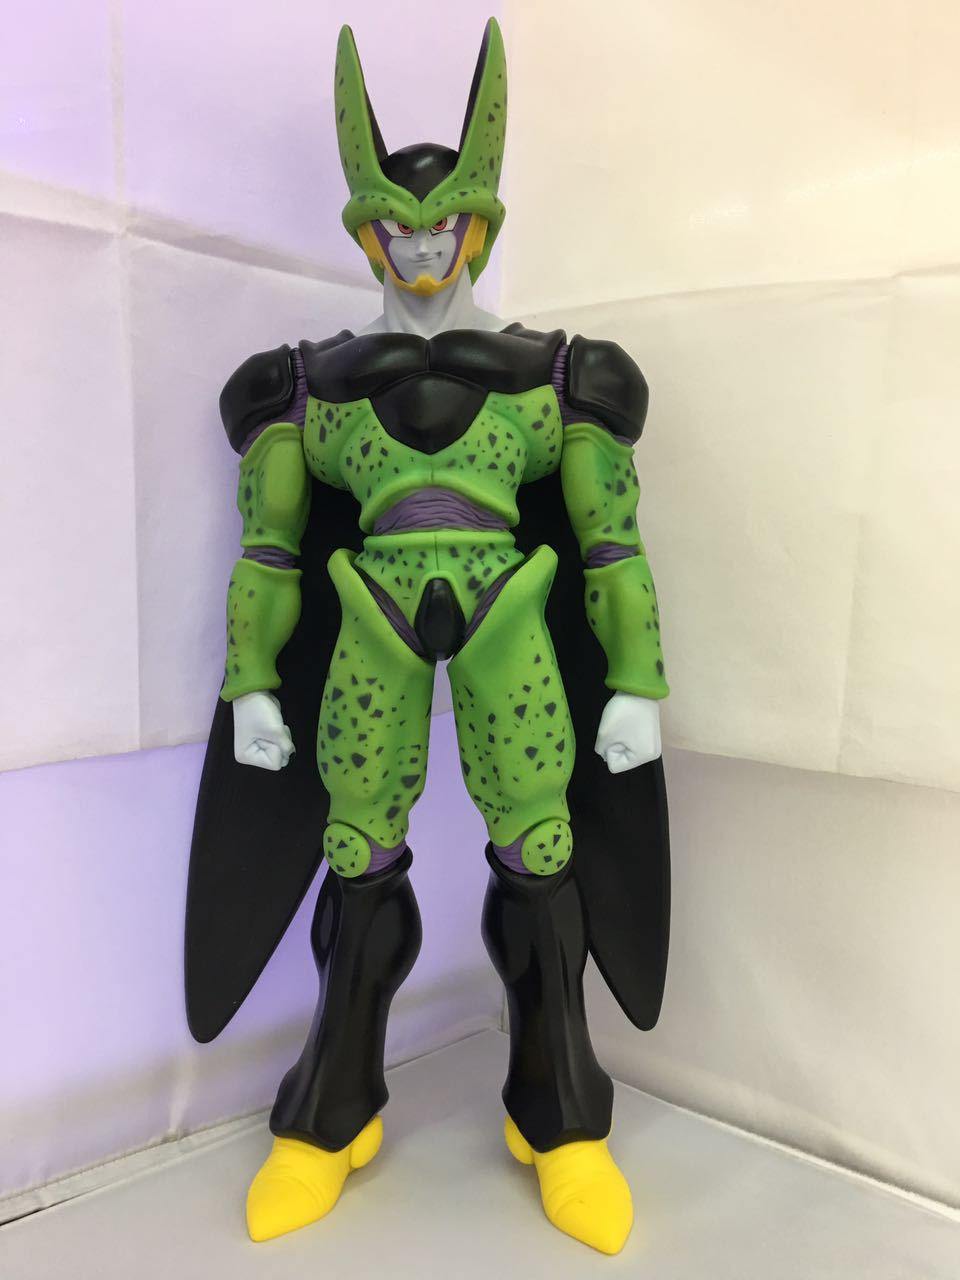 Anime Dragon Ball Z Perfect Cell Super Big PVC Action Figure Collectible Model Toy 48cm KT3906 faber orizzonte eg8 x a 60 active